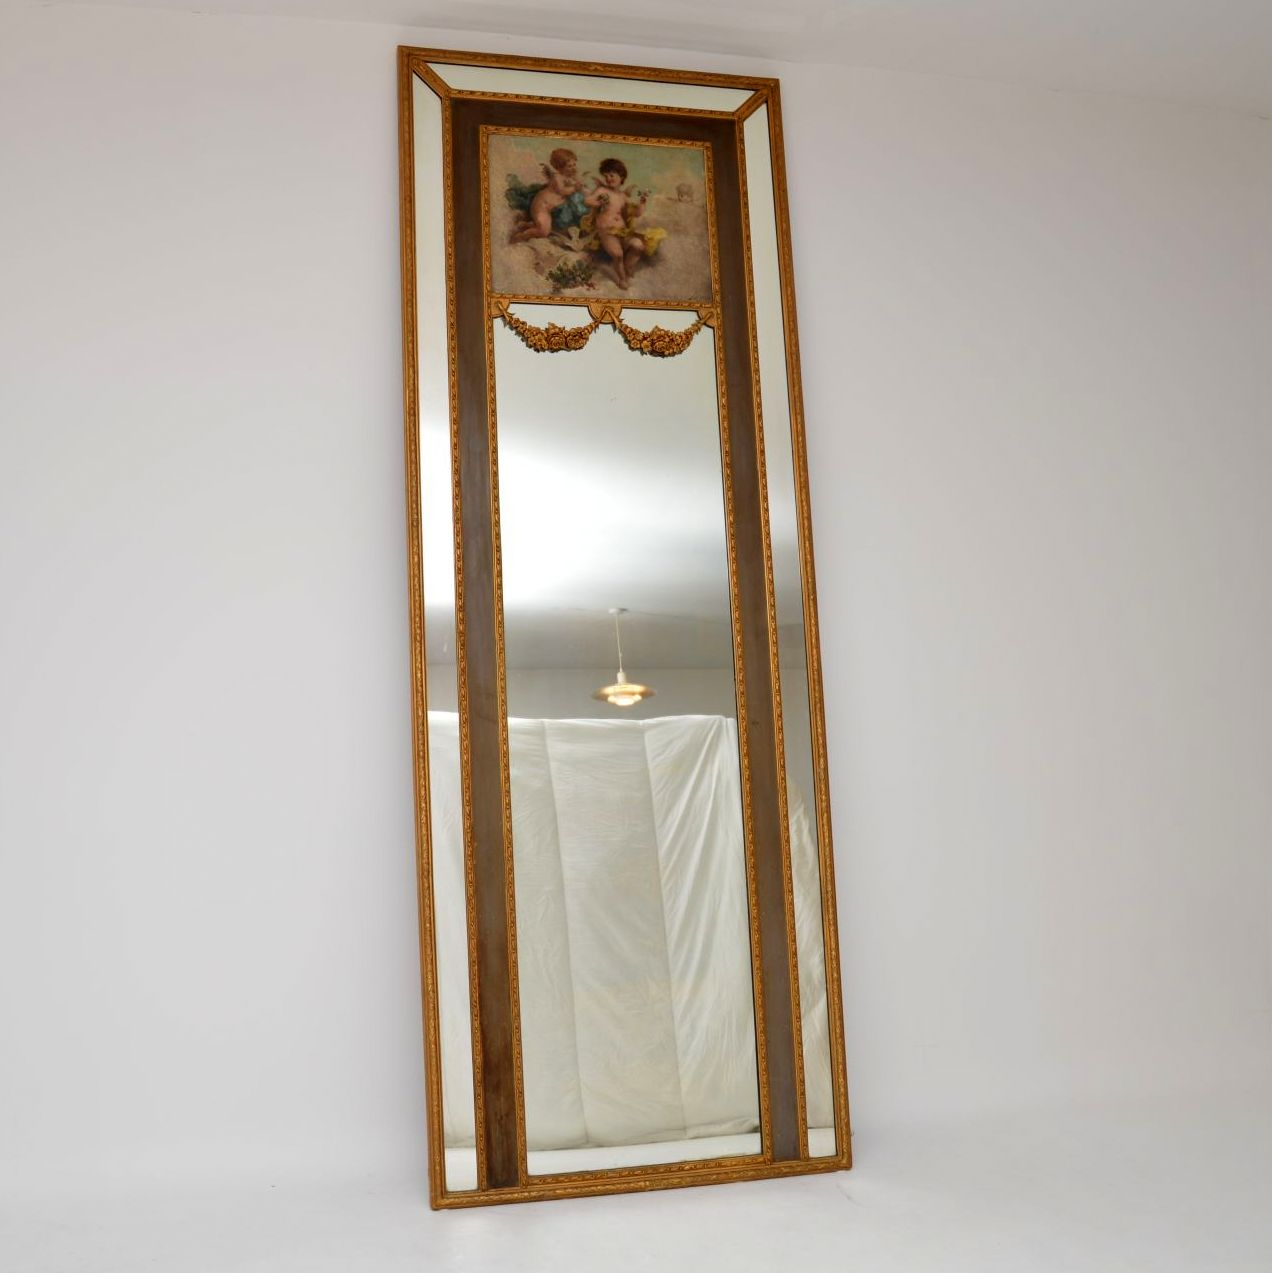 Enormous Antique Gilt Wood Mirror with Oil Painting